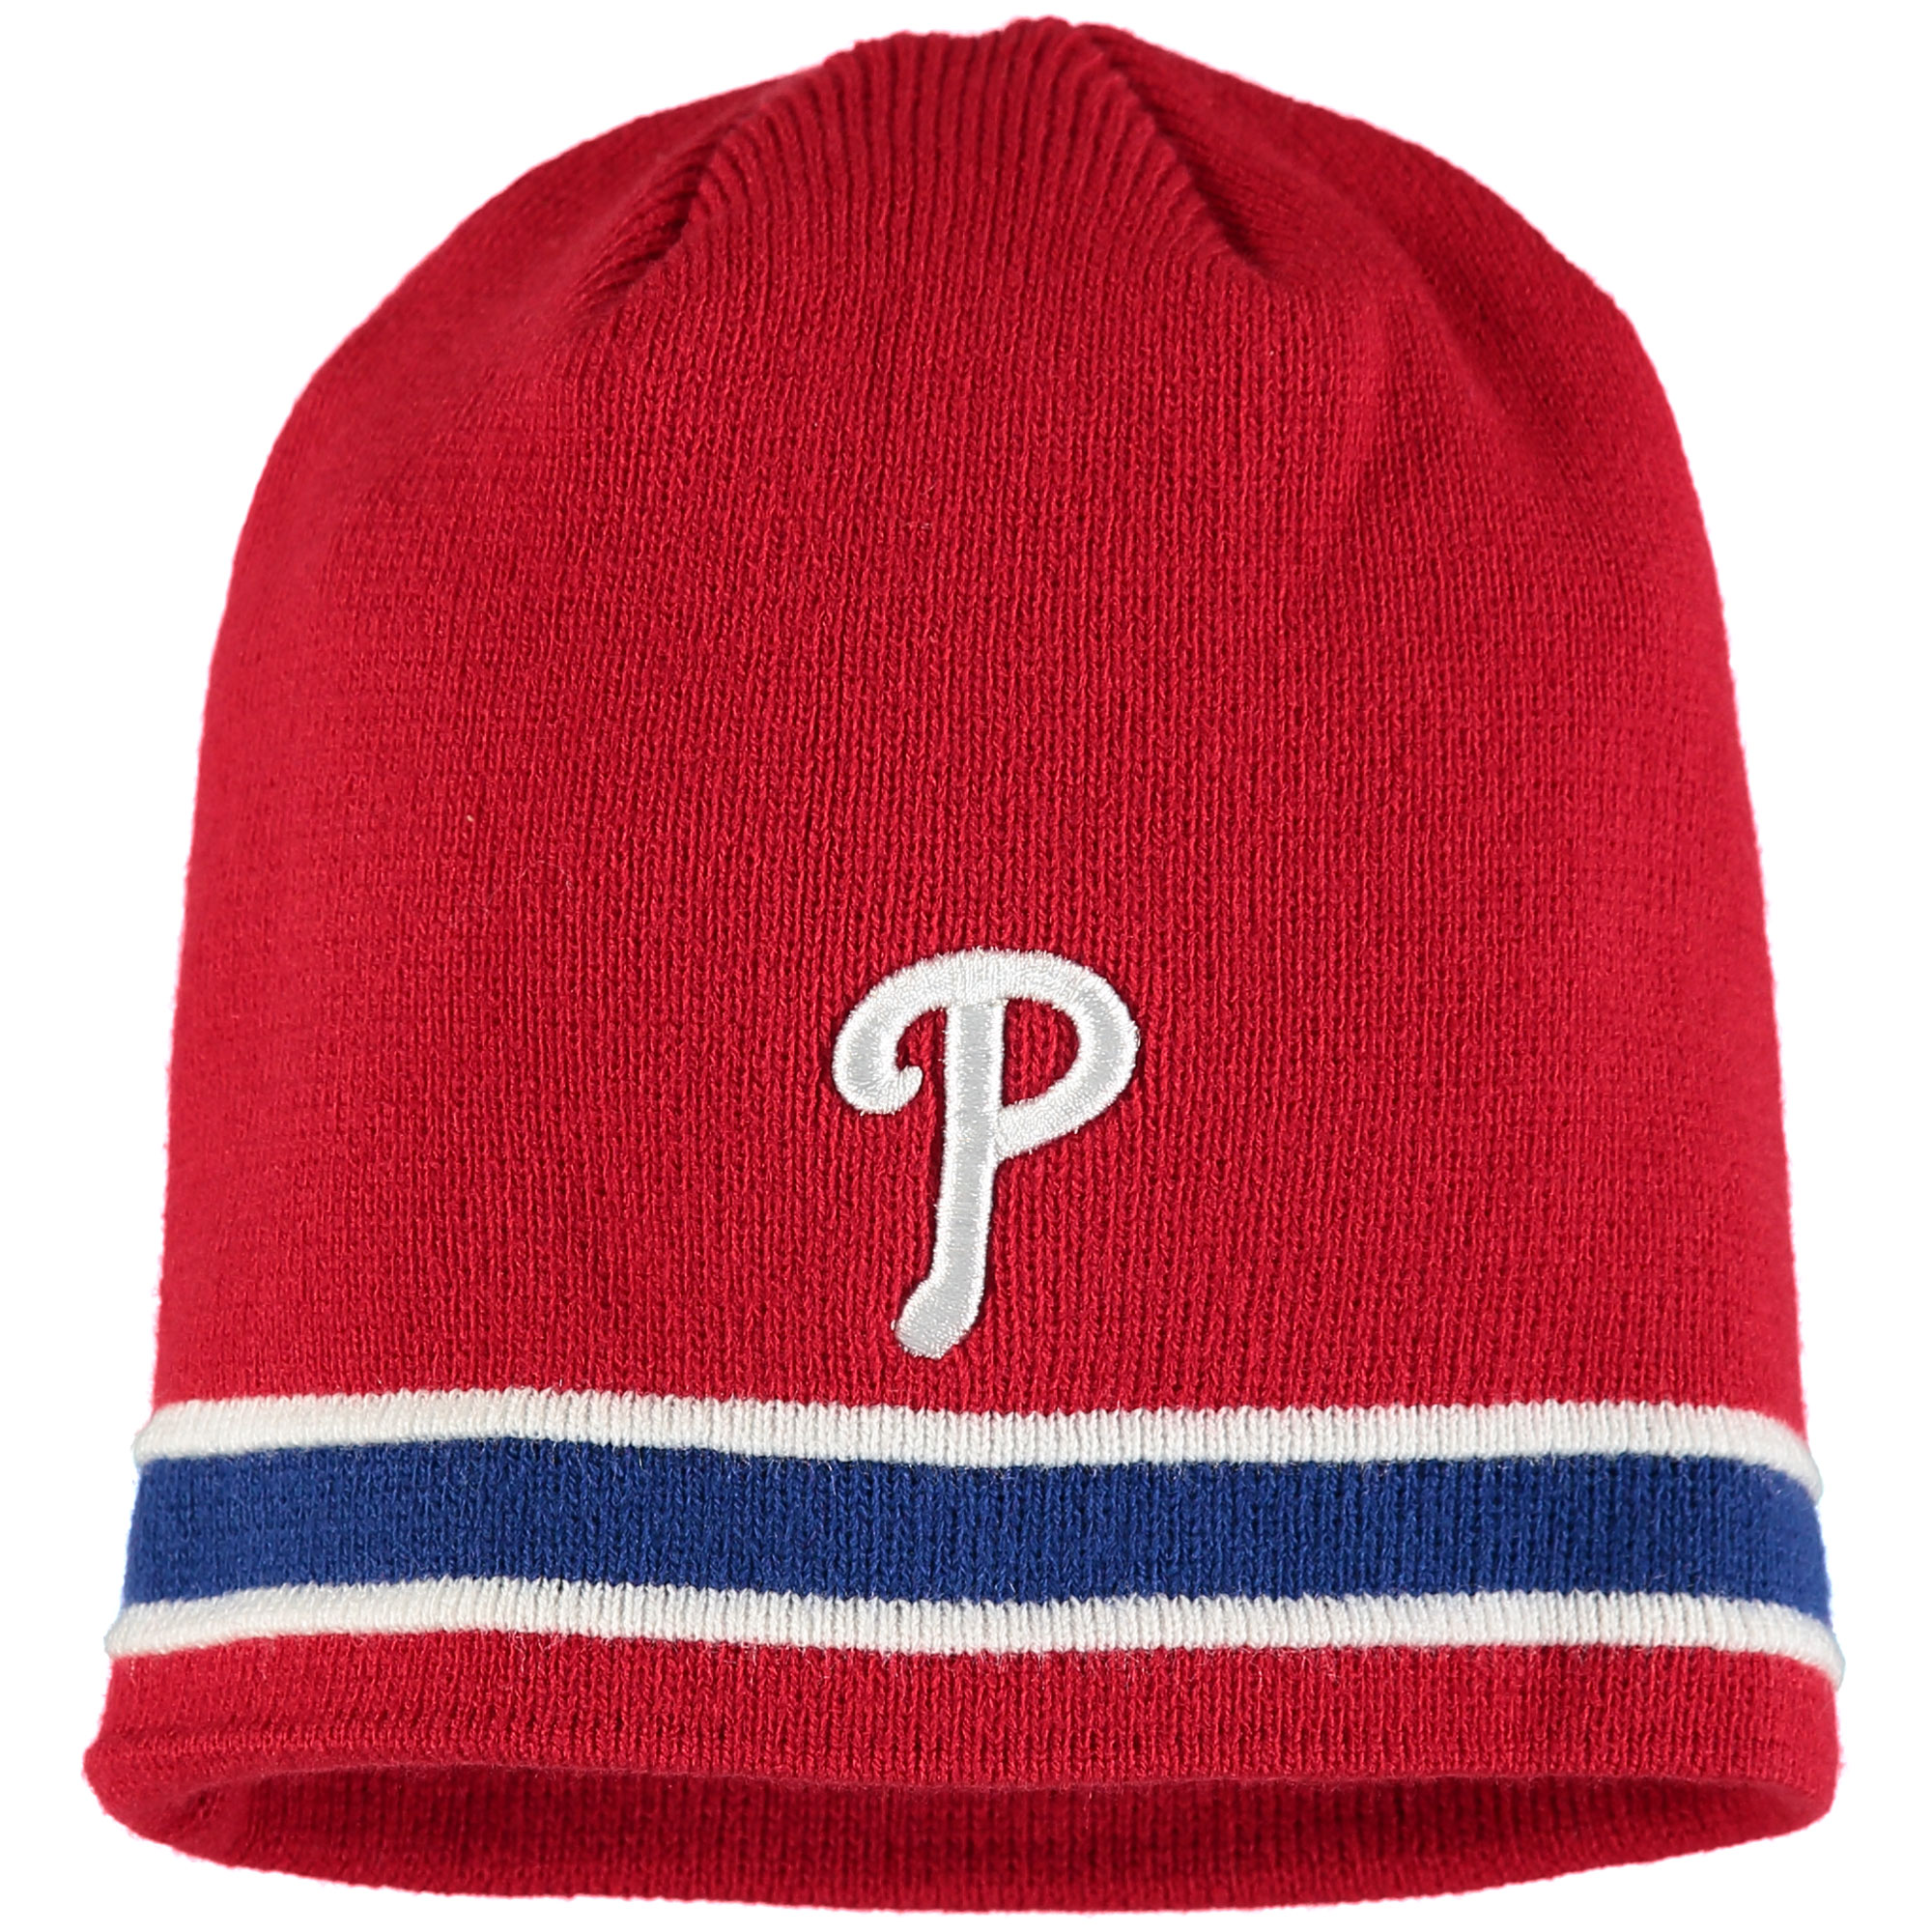 Philadelphia Phillies '47 Super Pipe Knit Beanie - Red - OSFA